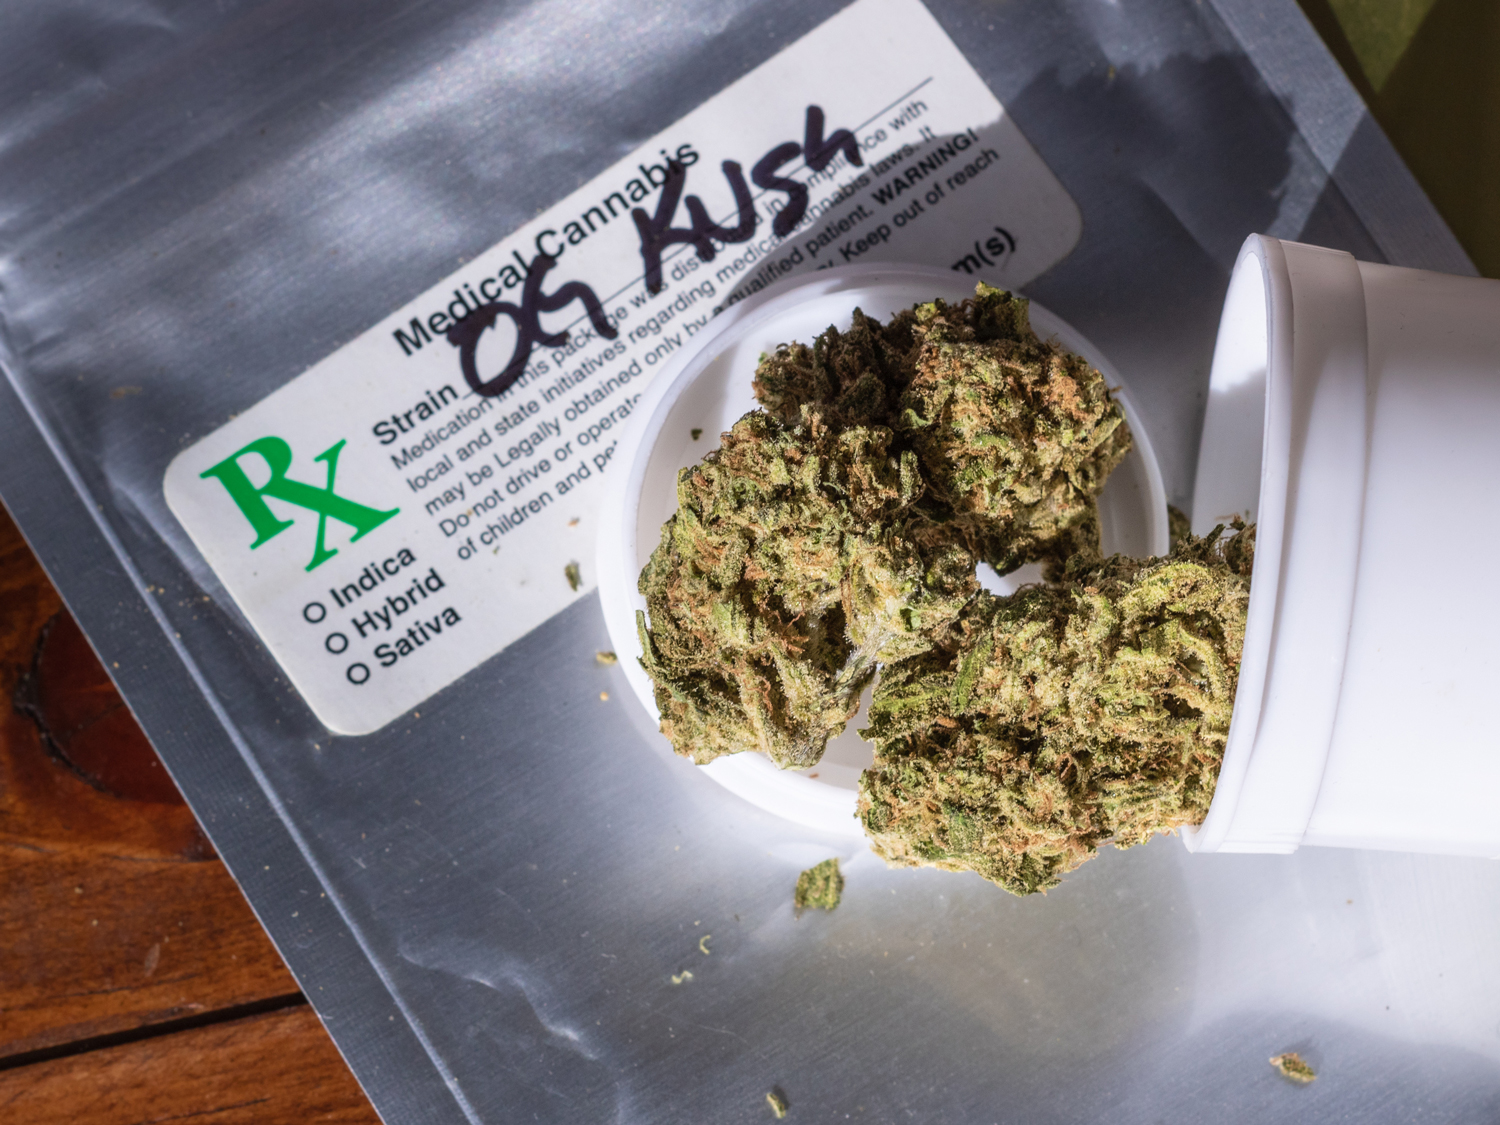 """""""OG Kush"""" cannabis flower purchased from a legal dispensary with labels Indica, Sativa, and Hybrid on the package."""